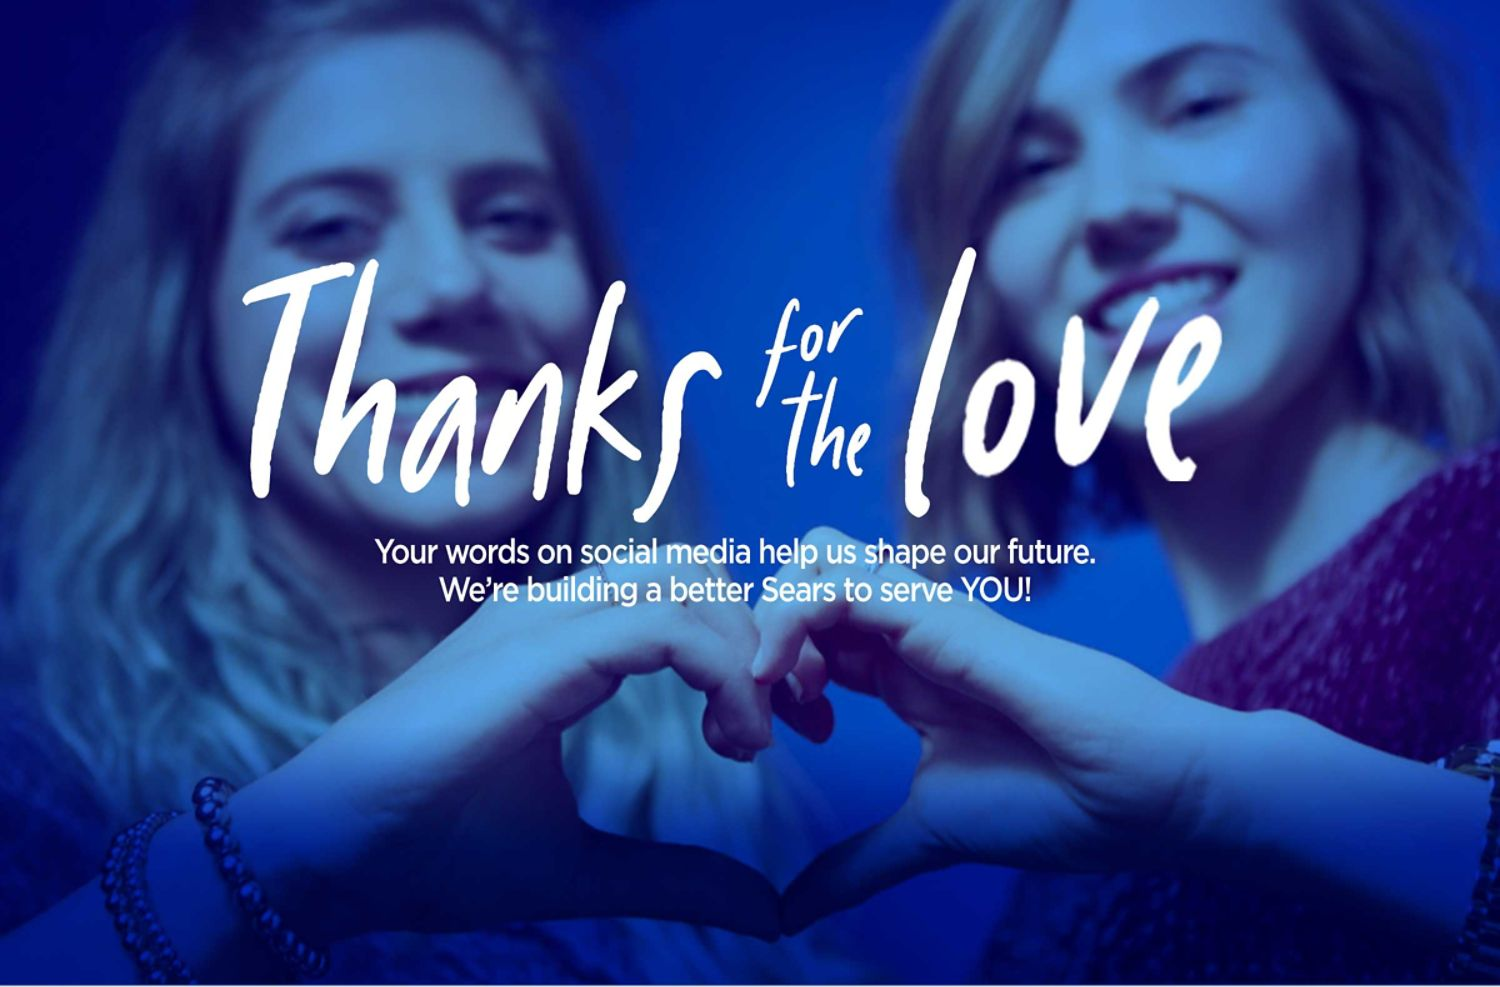 Thanks for the Love | We're building a better Sears to serve YOU!